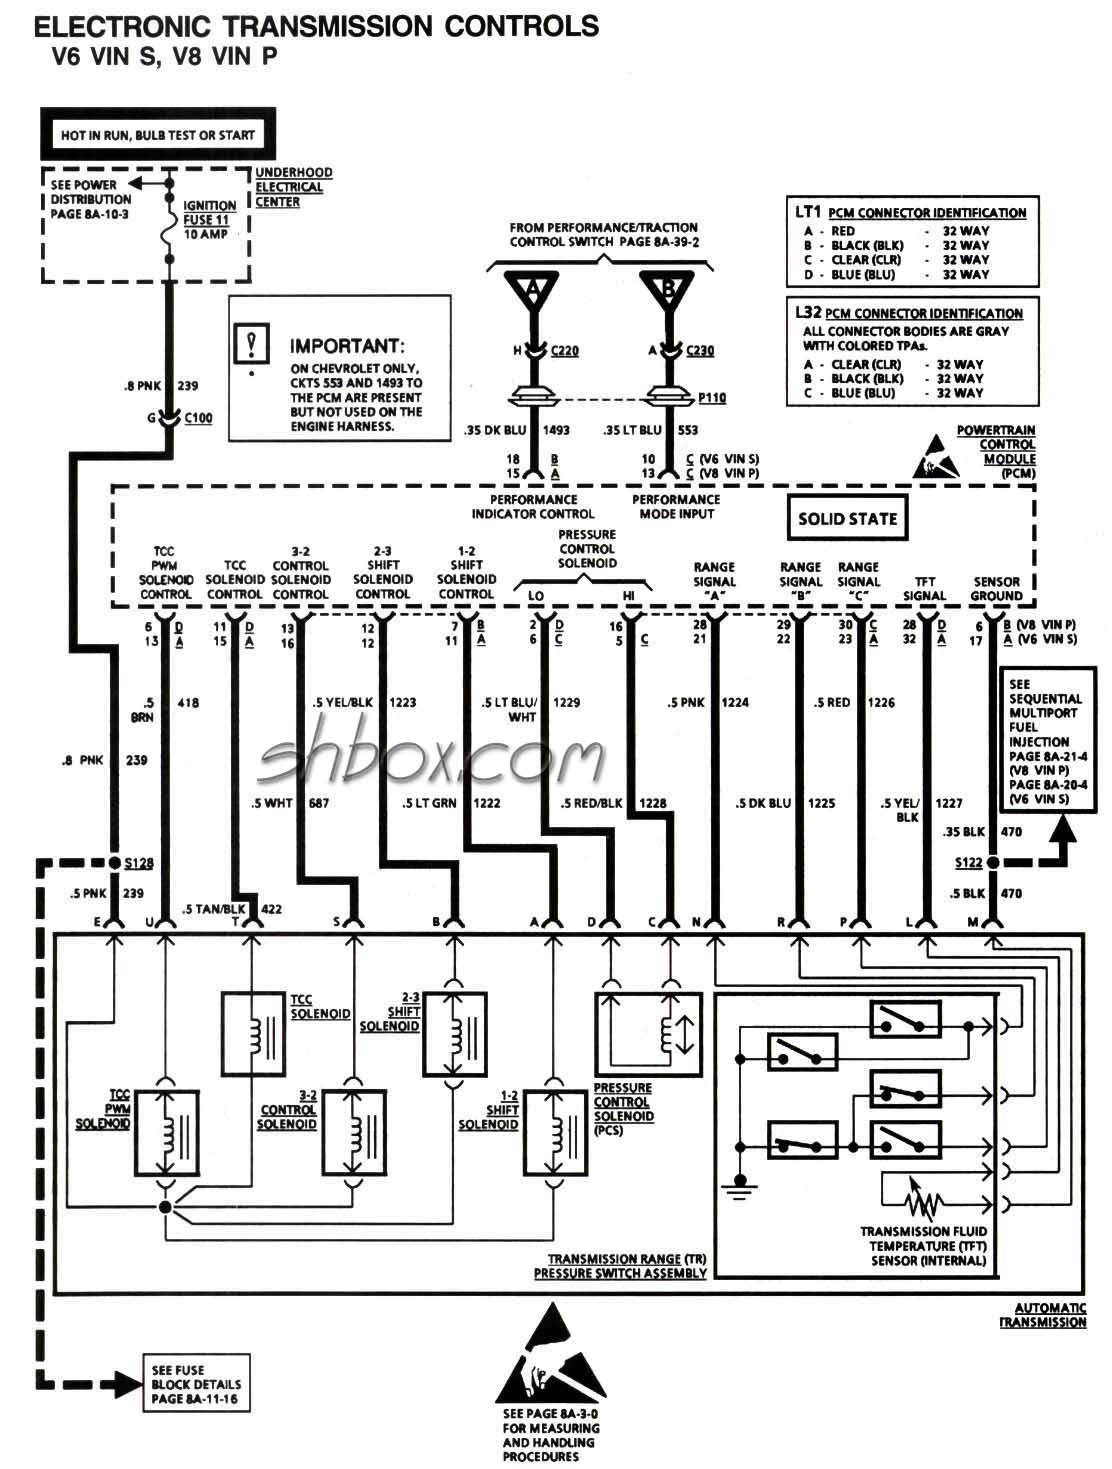 le prndl wiring hot rod forum bulletin board click image for larger version electronic trans controls jpg views 9251 size 158 0